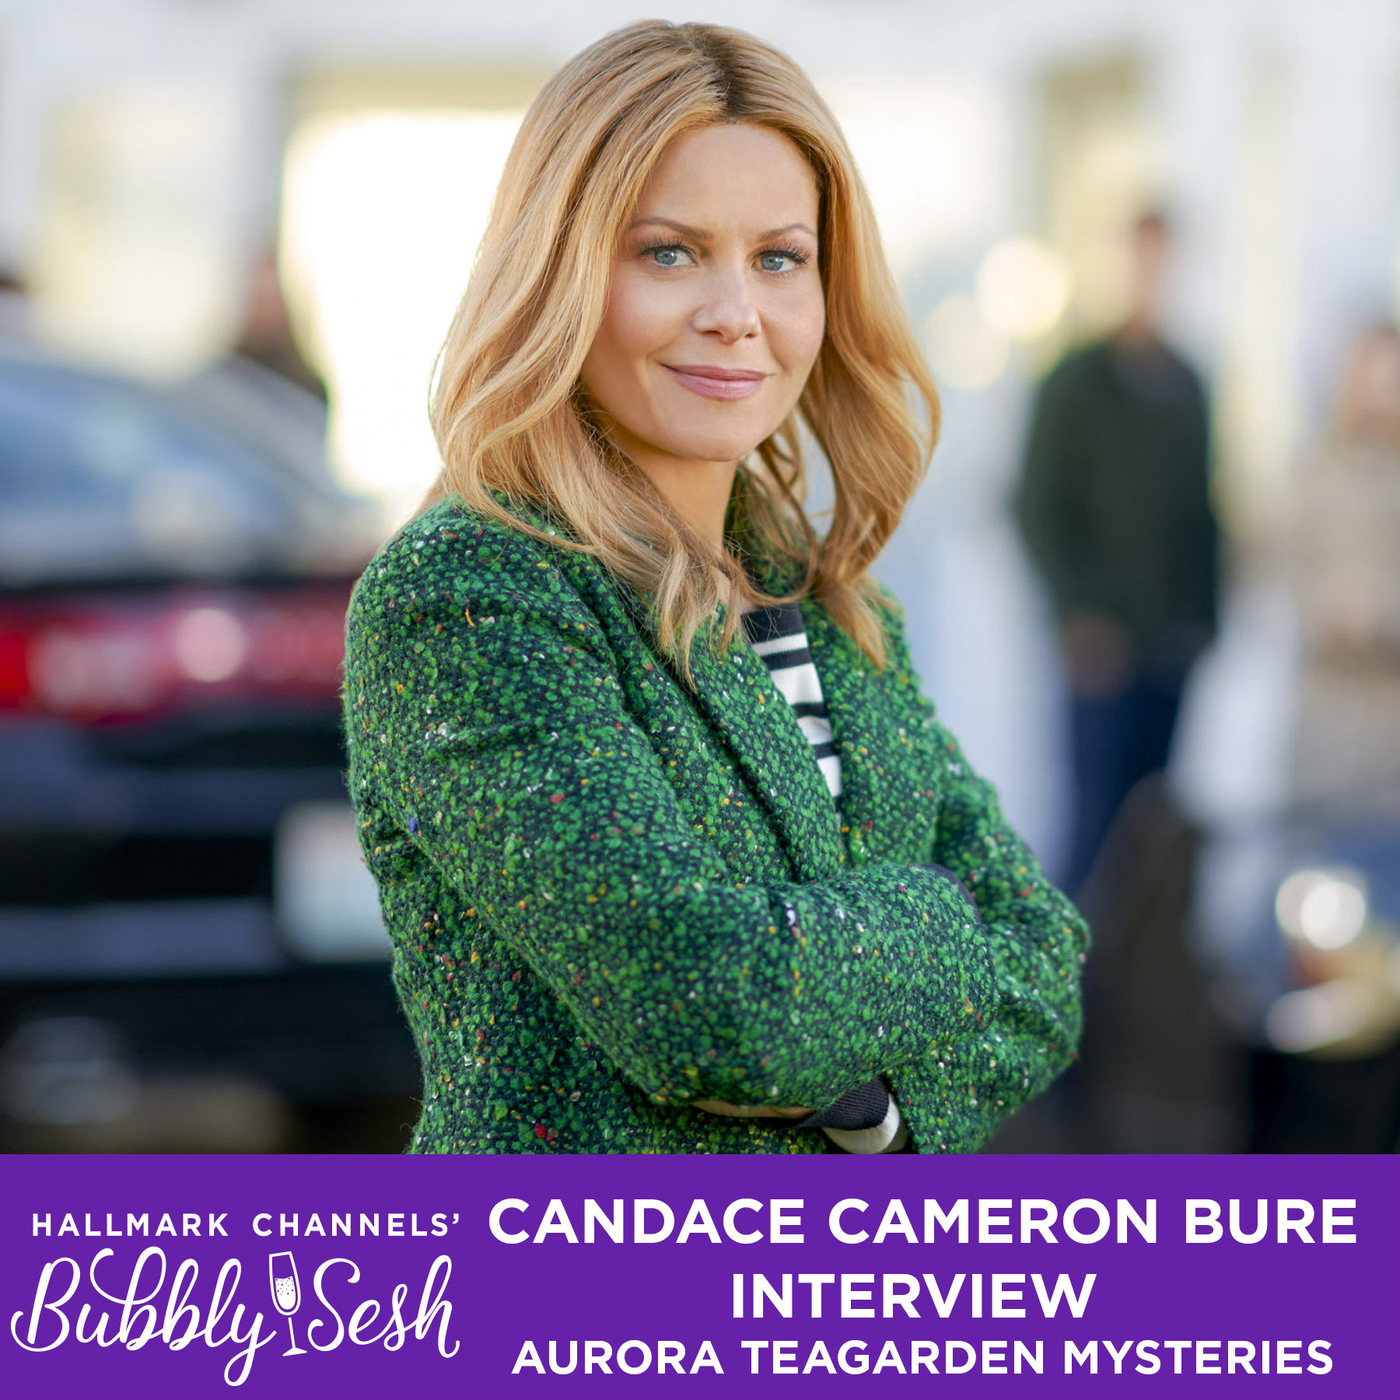 Aurora Teagarden Mysteries: Candace Cameron Bure Interview